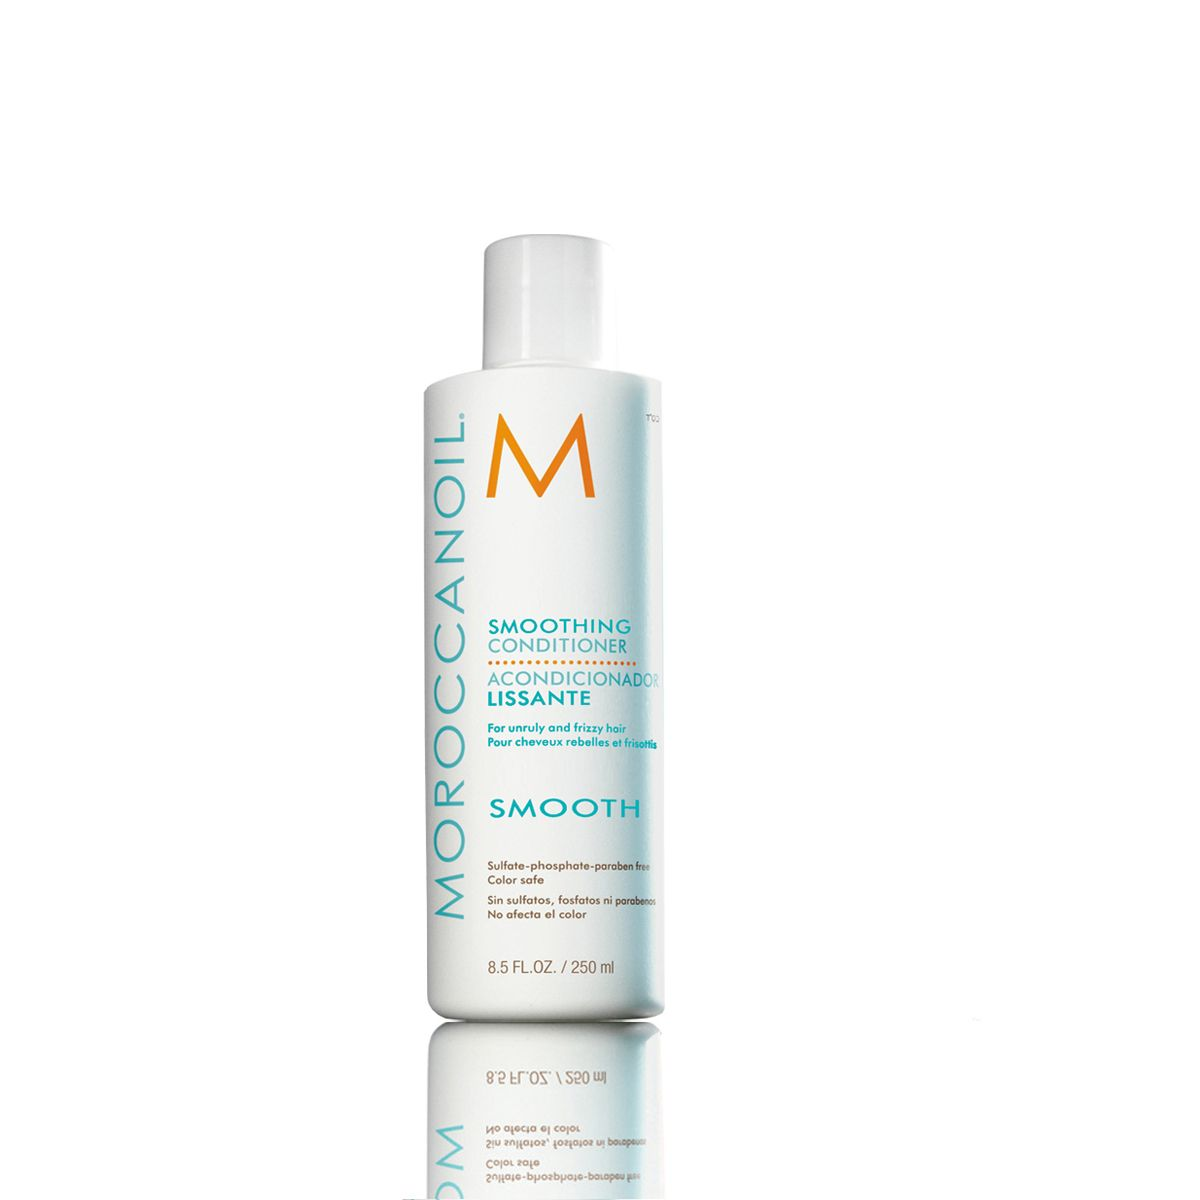 Moroccanoil Smoothing Conditioner 250ml.